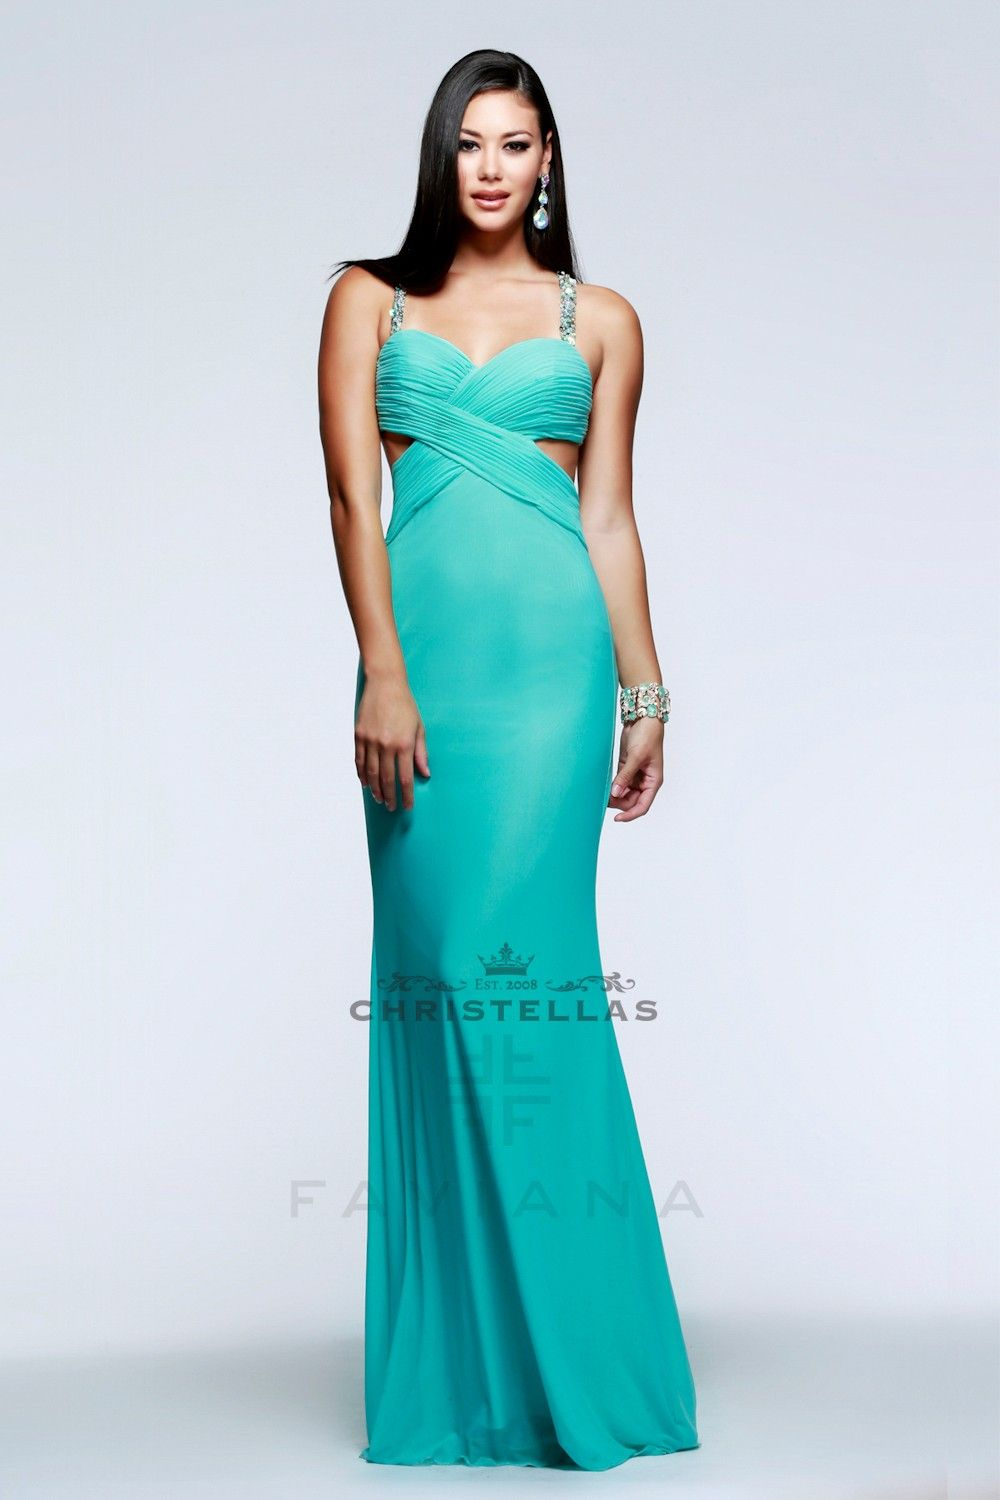 The uniquely strappy and sequined back on this dress is dazzling ...